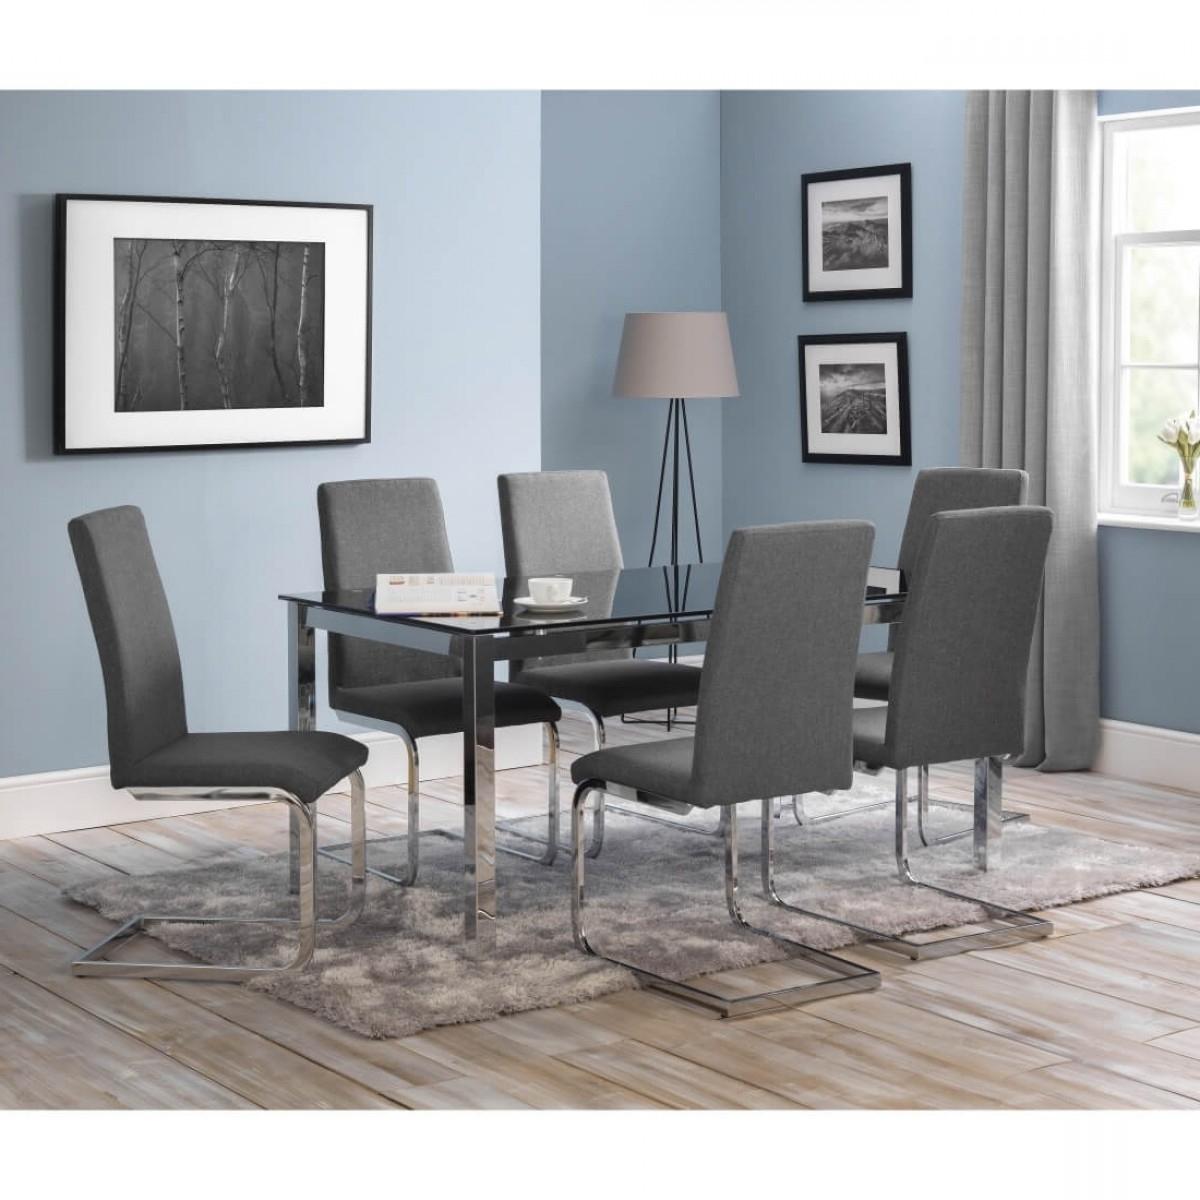 Roma Dining Tables With Regard To Best And Newest Dining Set – Tempo Dining Table And 4 Roma Chairs Tem (View 21 of 25)